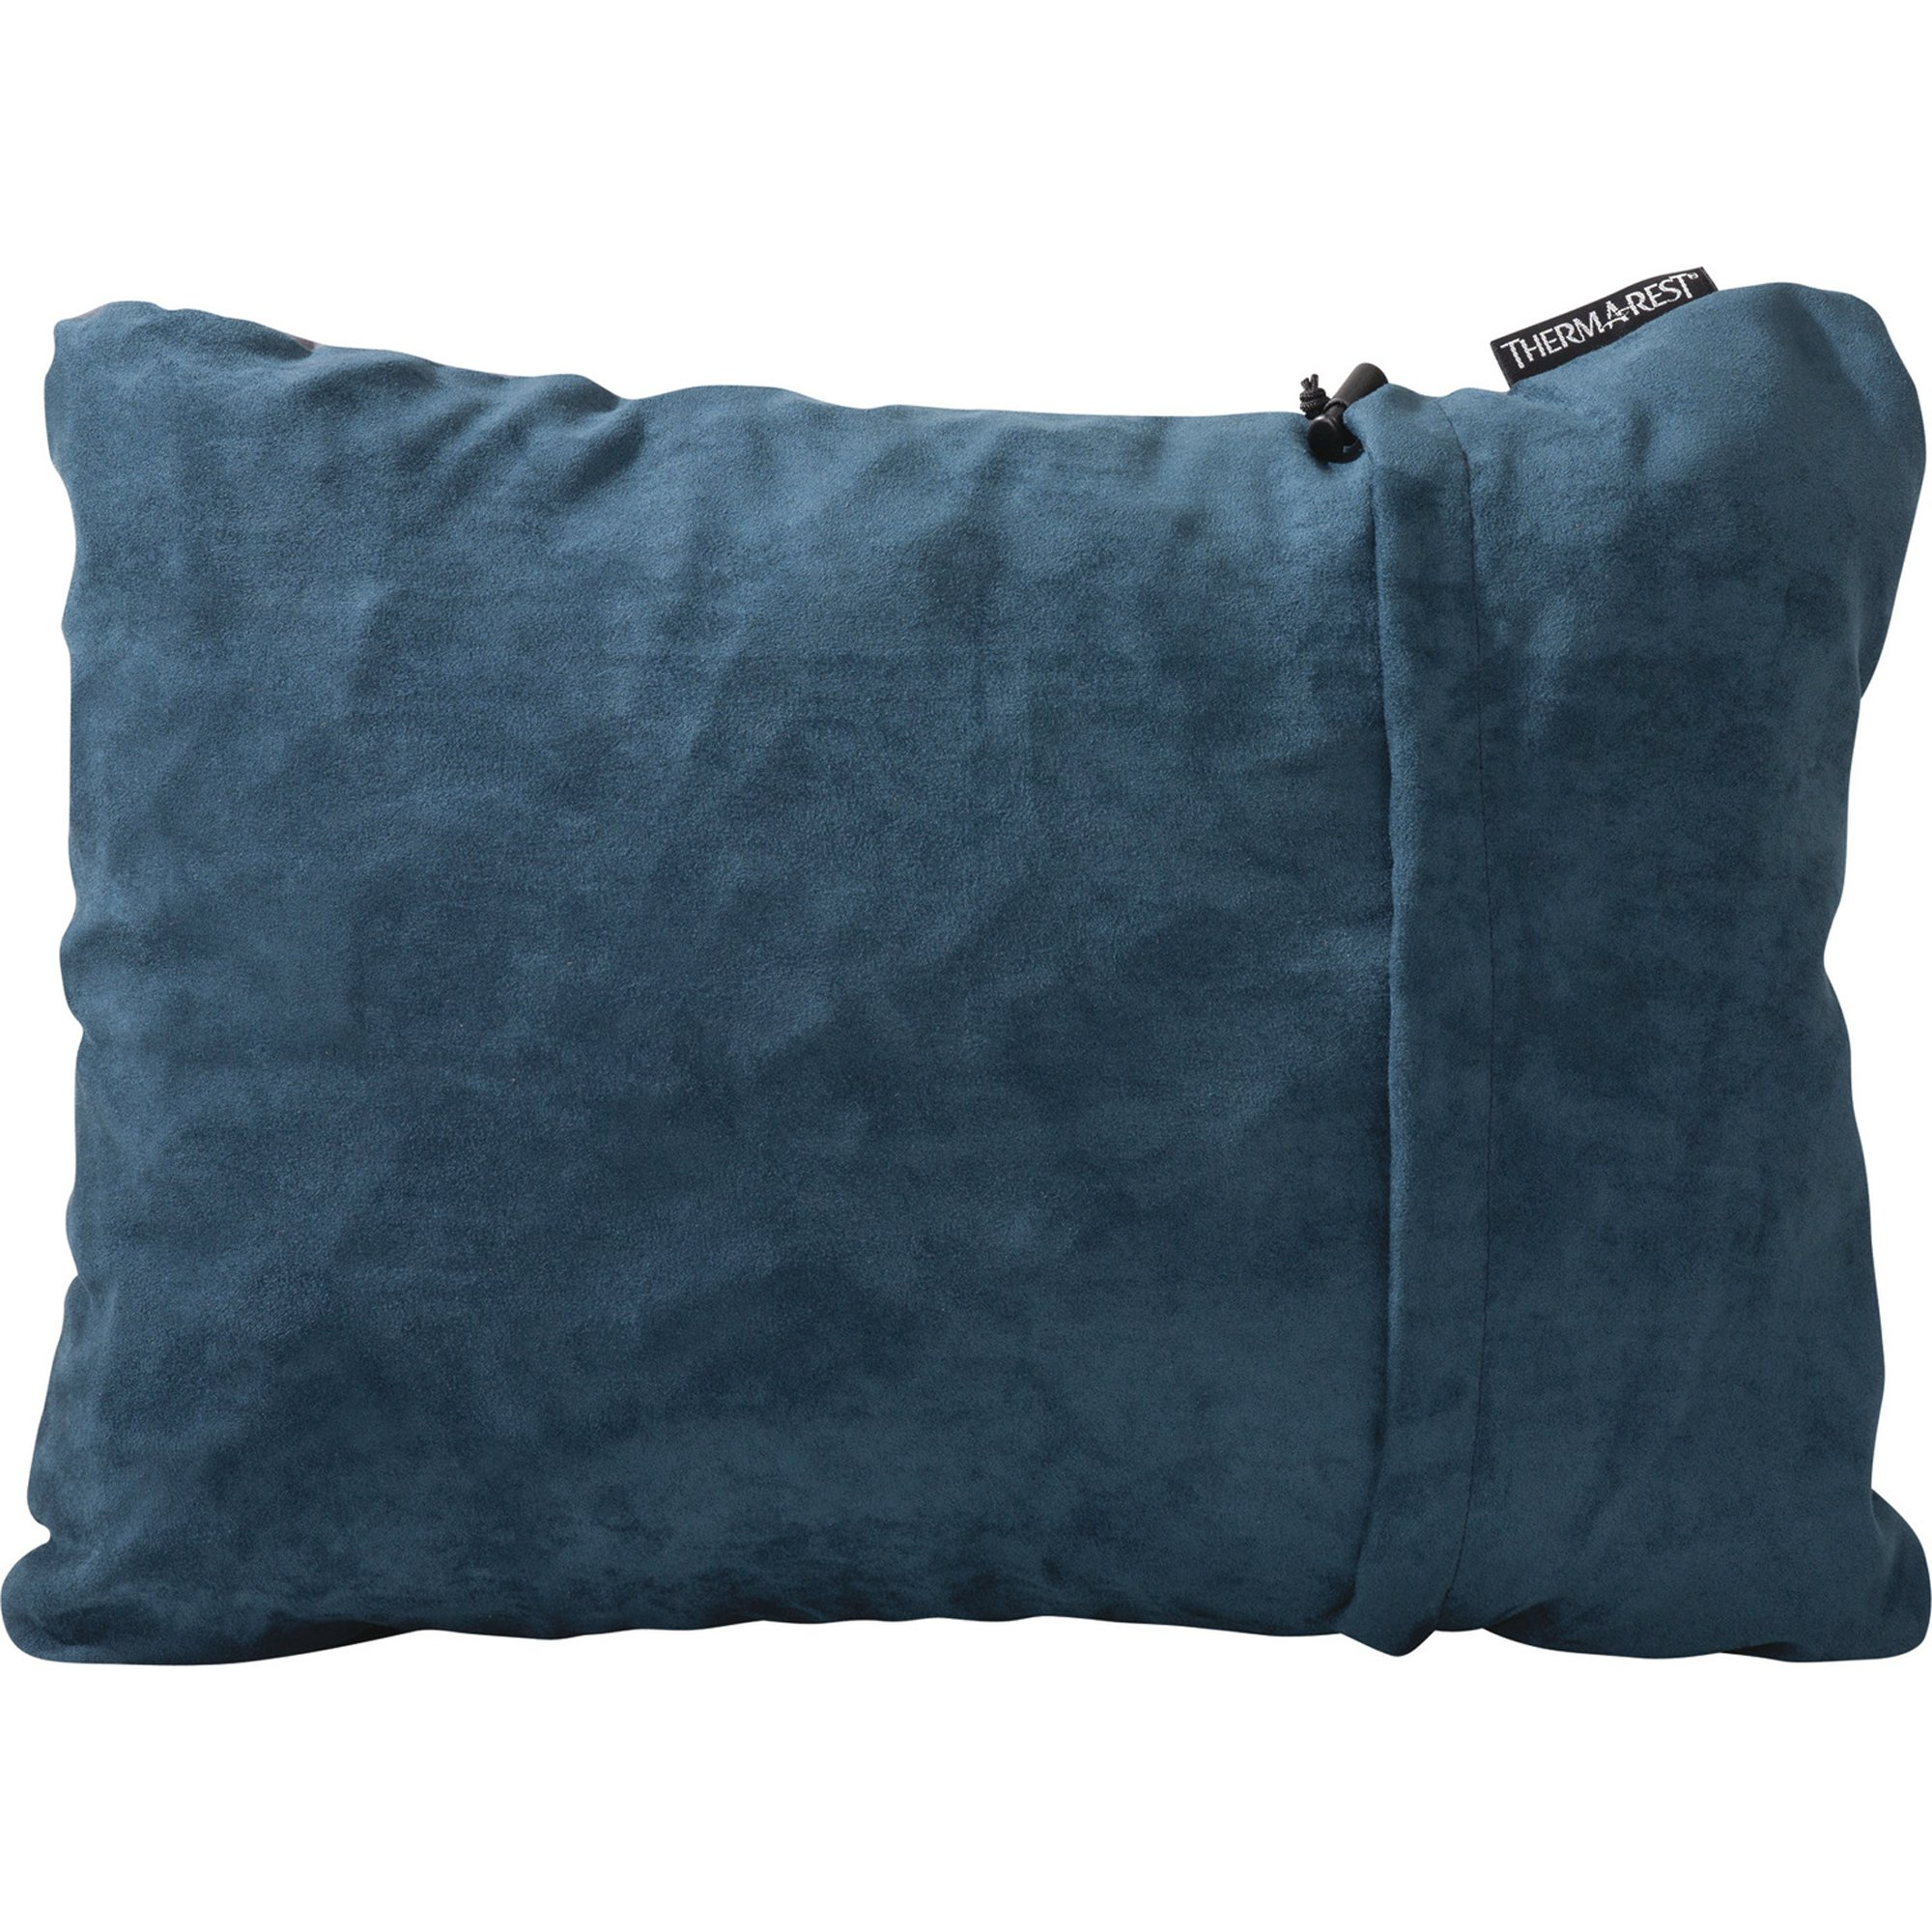 "Therm-a-Rest Compressible Travel Pillow for Camping, Backpacking, Airplanes and Road Trips, Denim, Medium: 14"" x 18"""